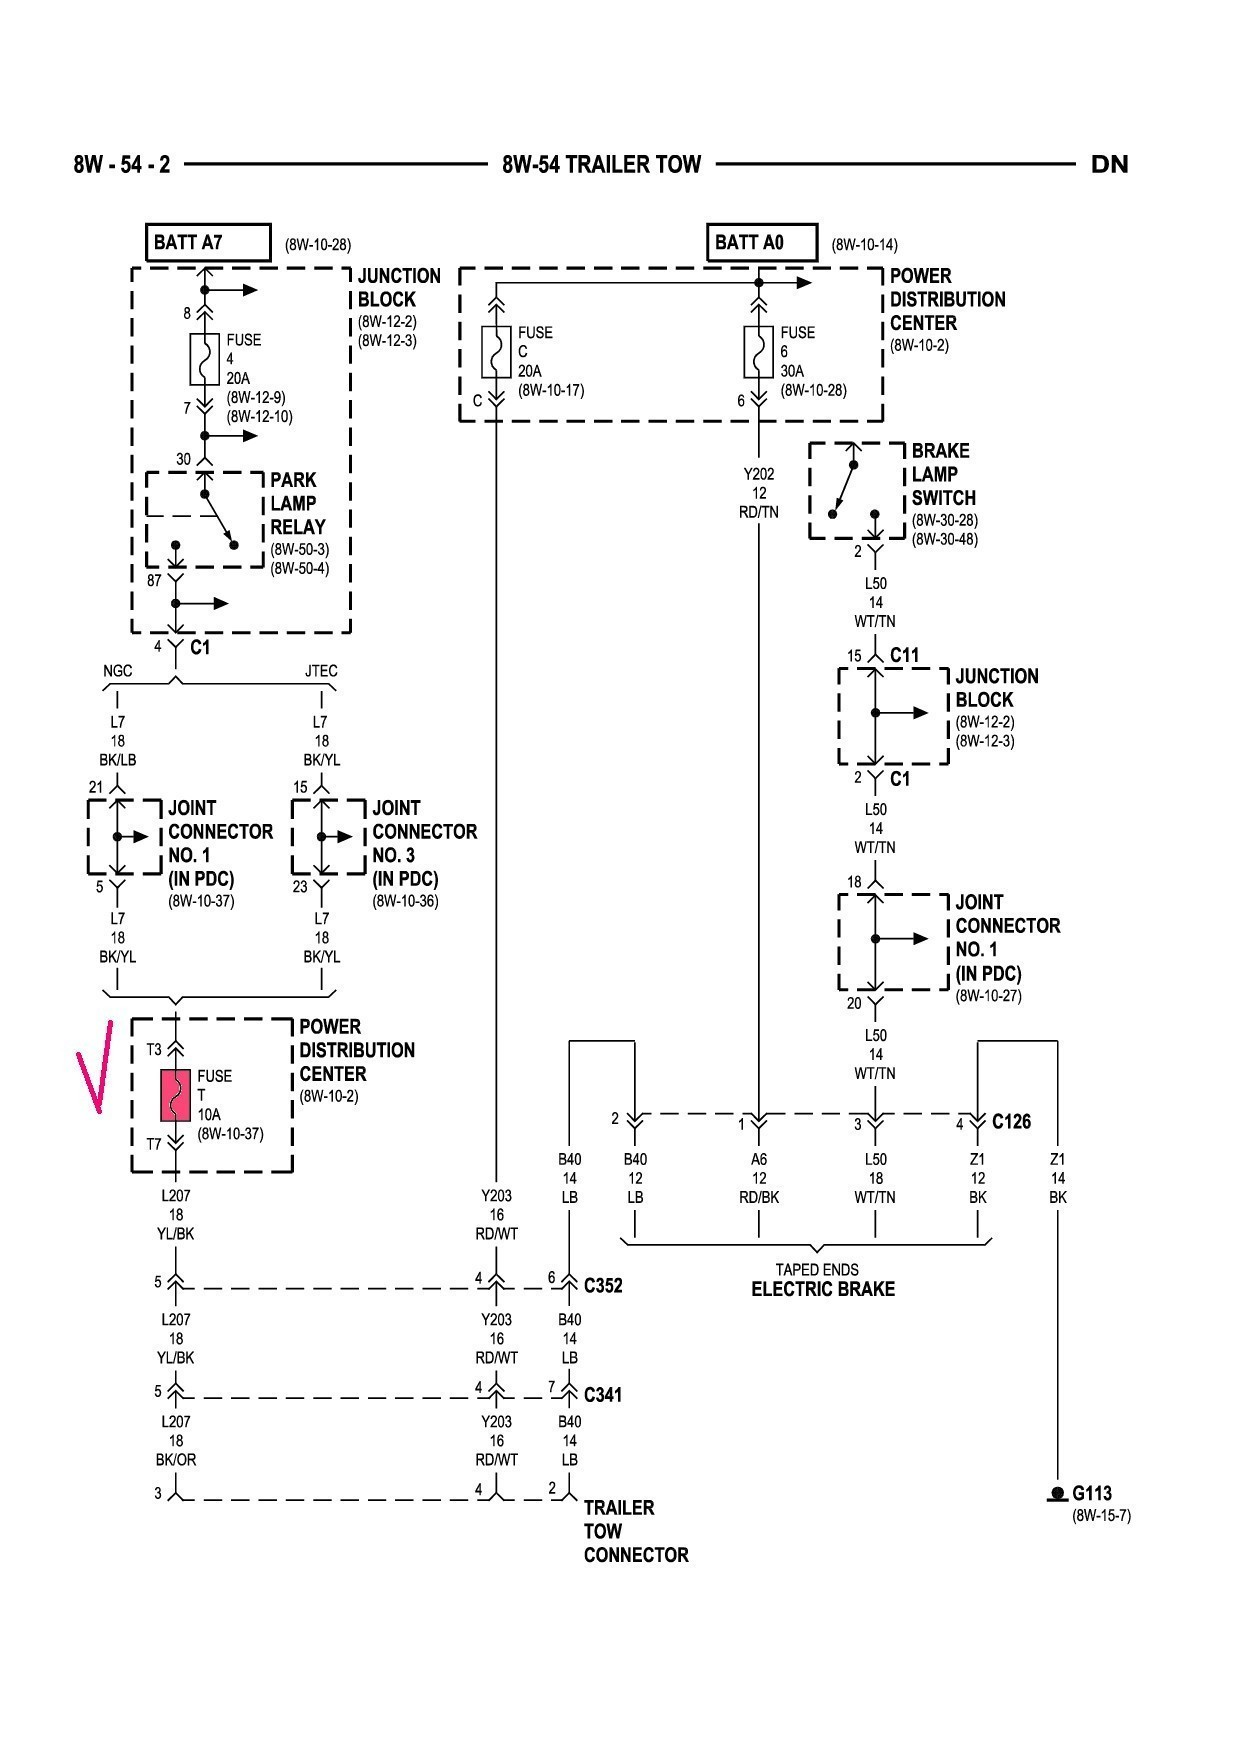 1999 Dodge Durango Wiring Diagram New | Wiring Diagram Image